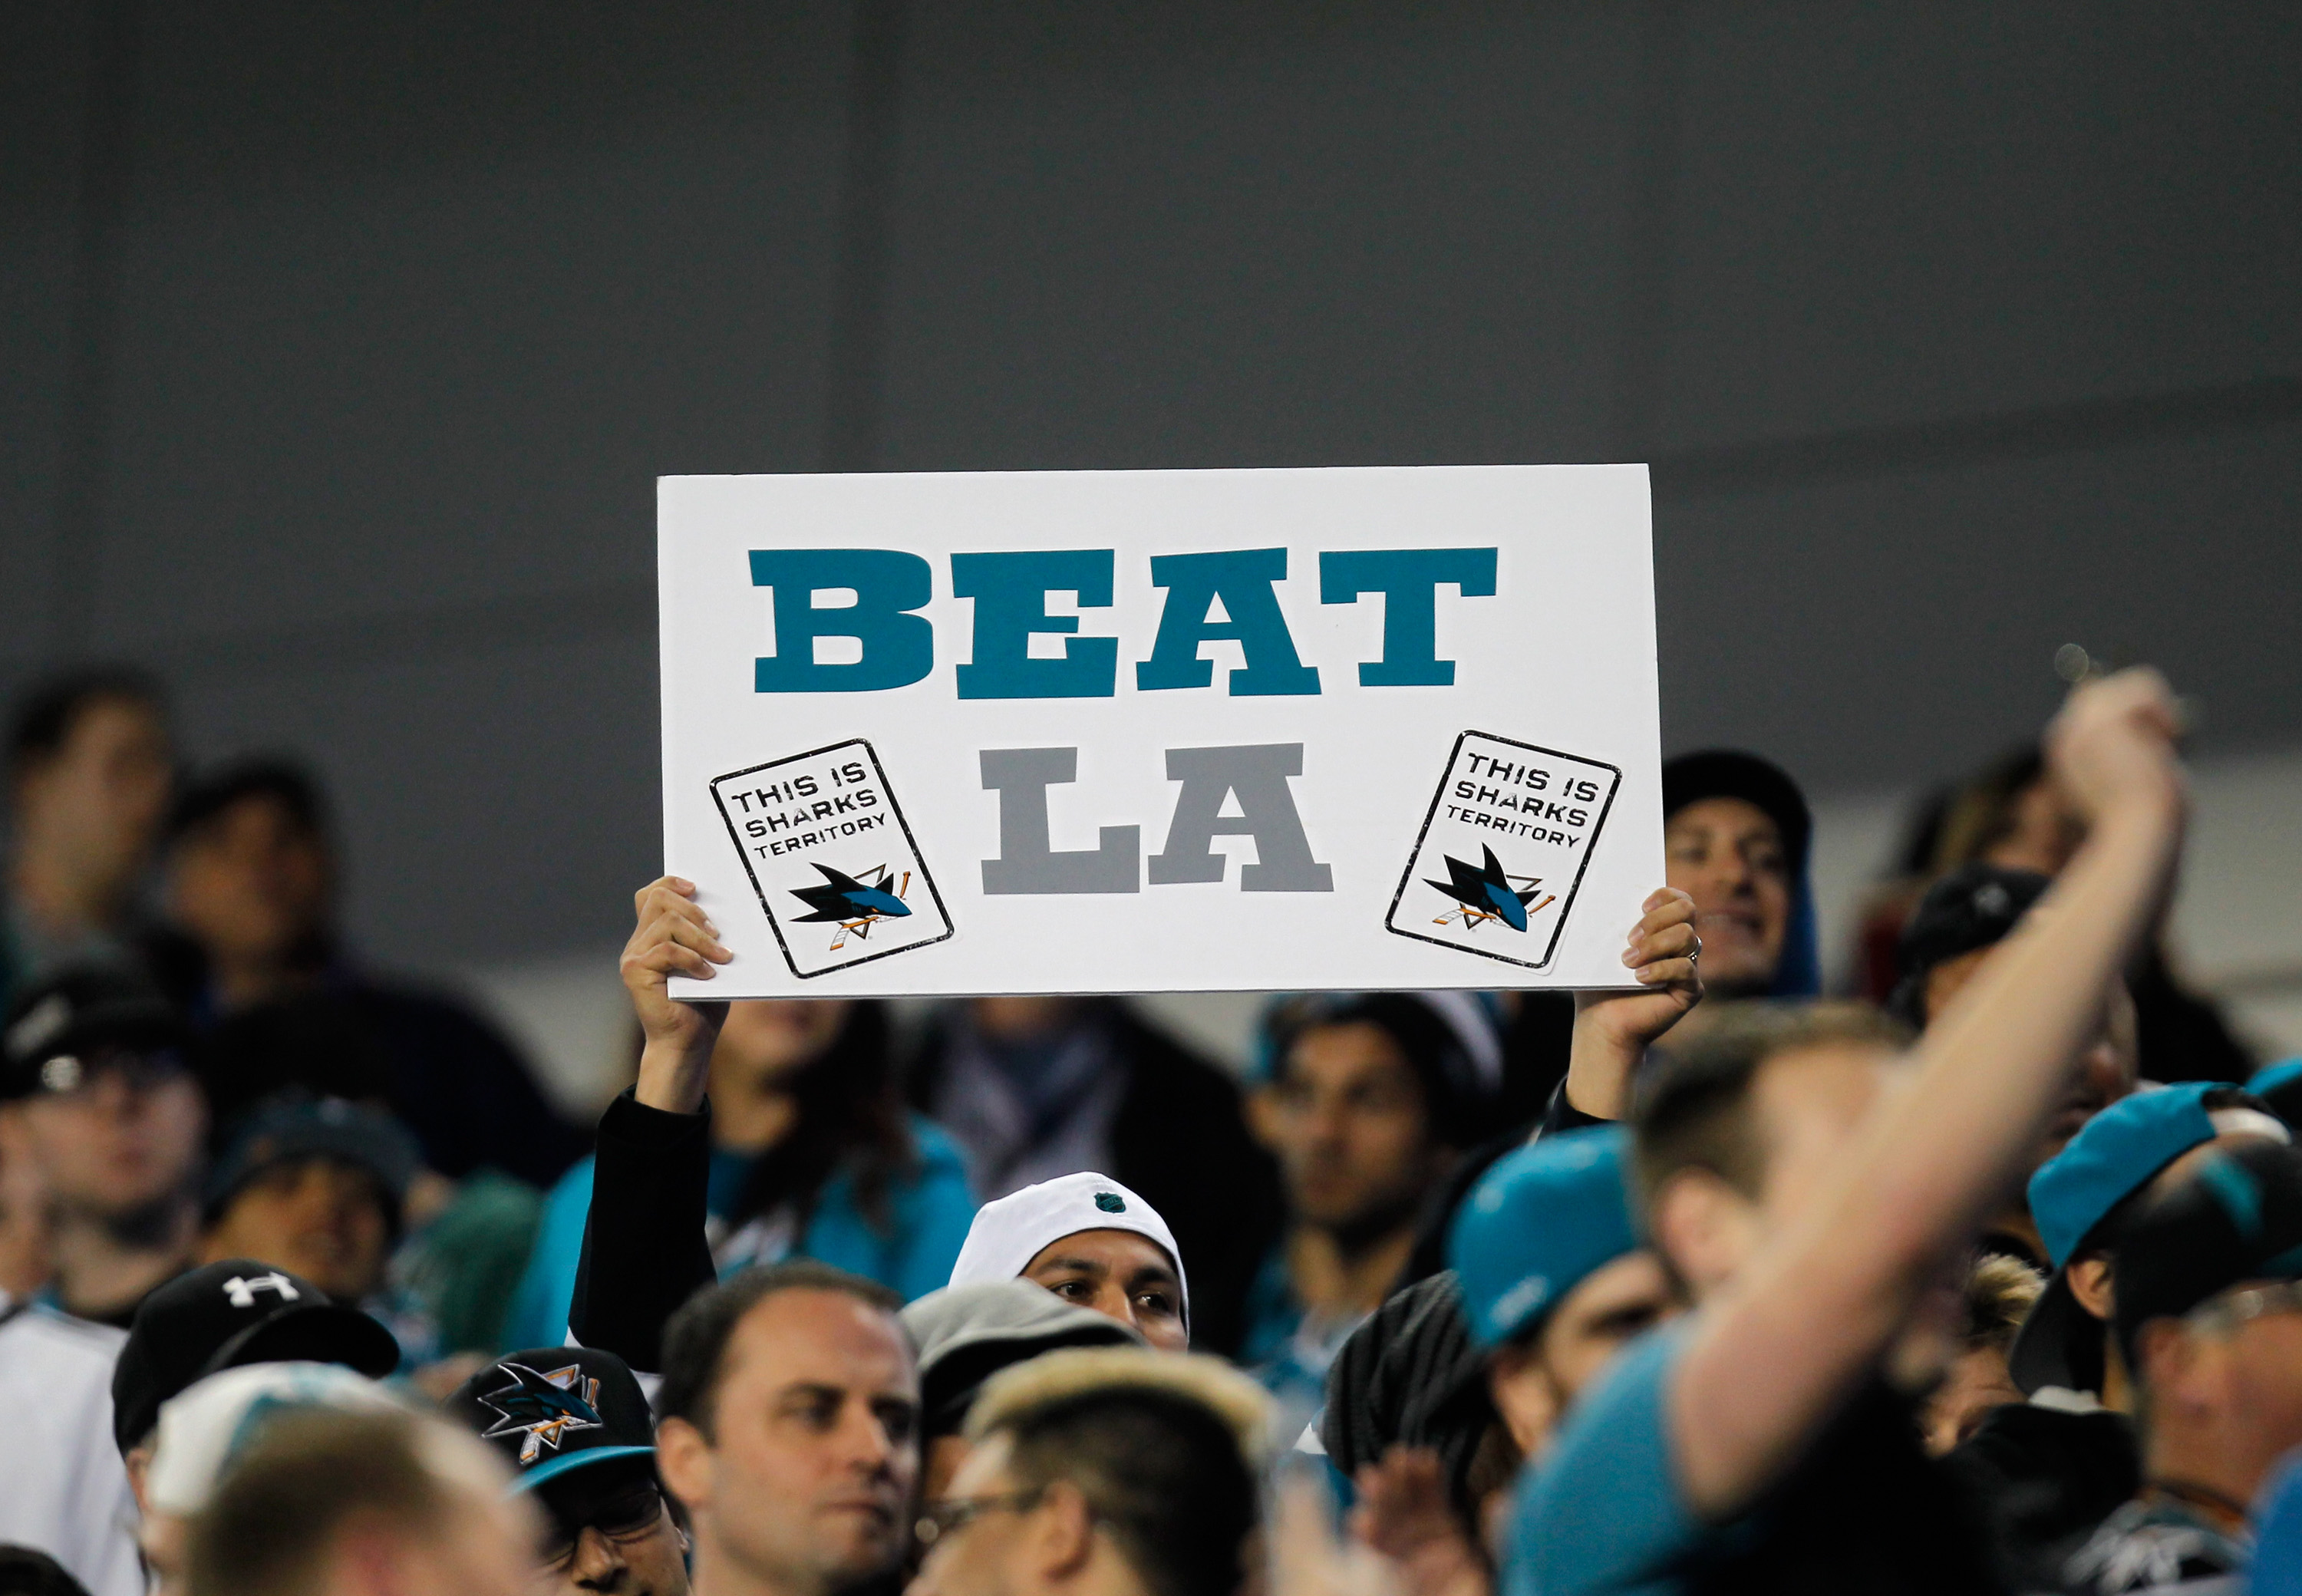 SANTA CLARA, CA - FEBRUARY 21: Fans hold a sign during the 2015 Coors Light NHL Stadium Series game between the Los Angeles Kings and the San Jose Sharks at Levi's Stadium on February 21, 2015 in Santa Clara, California.